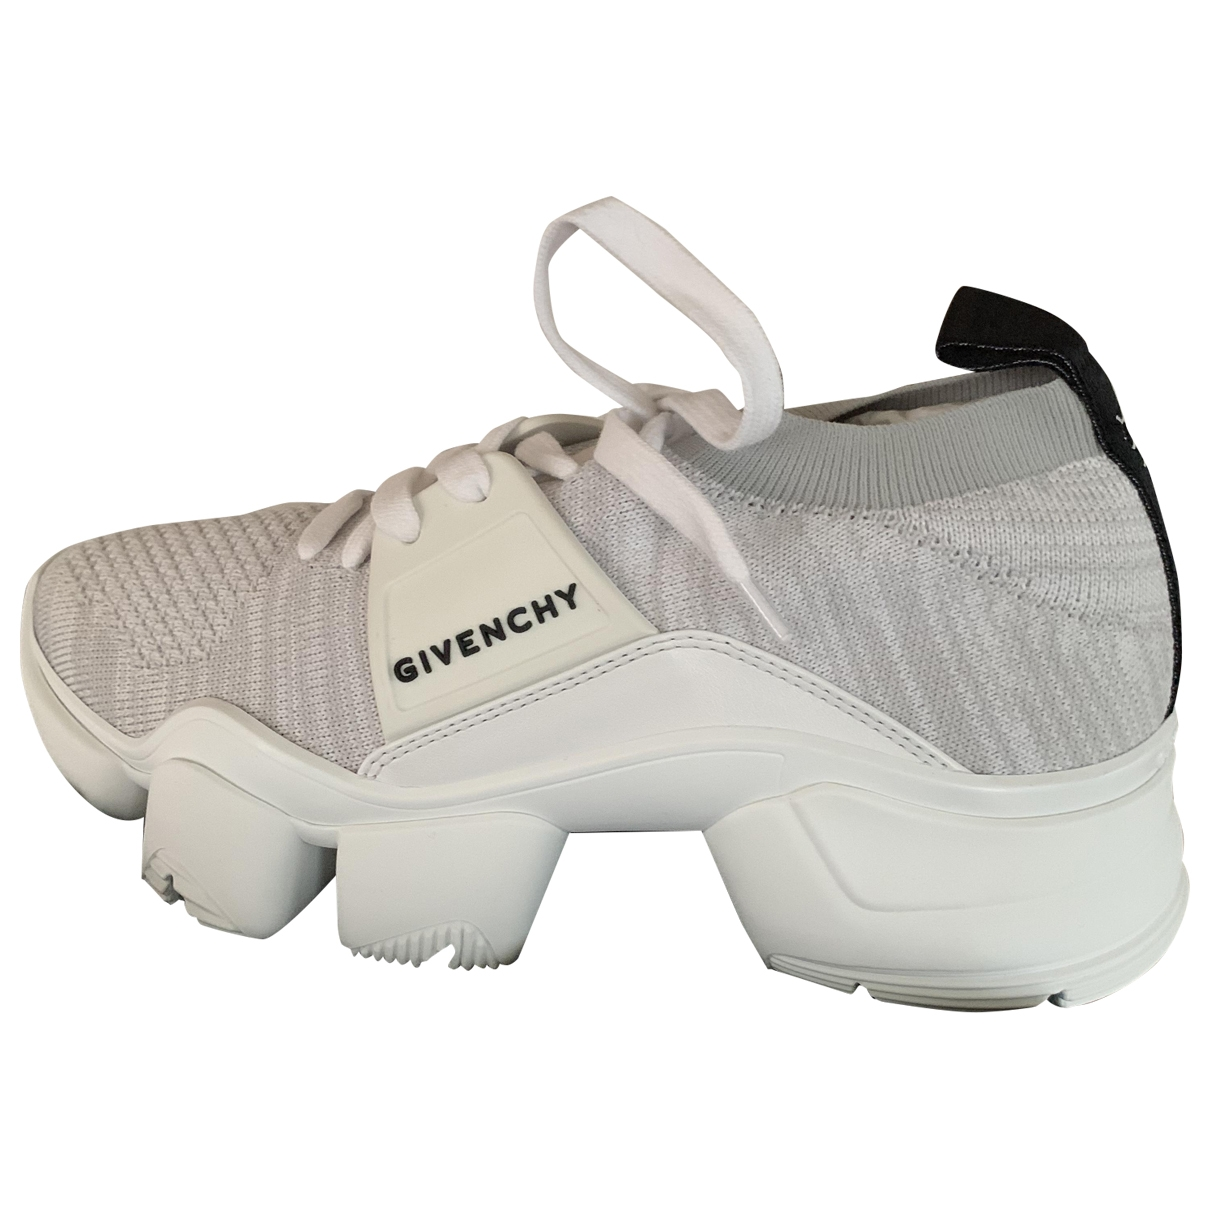 Givenchy Jaw White Cloth Trainers for Women 37 EU